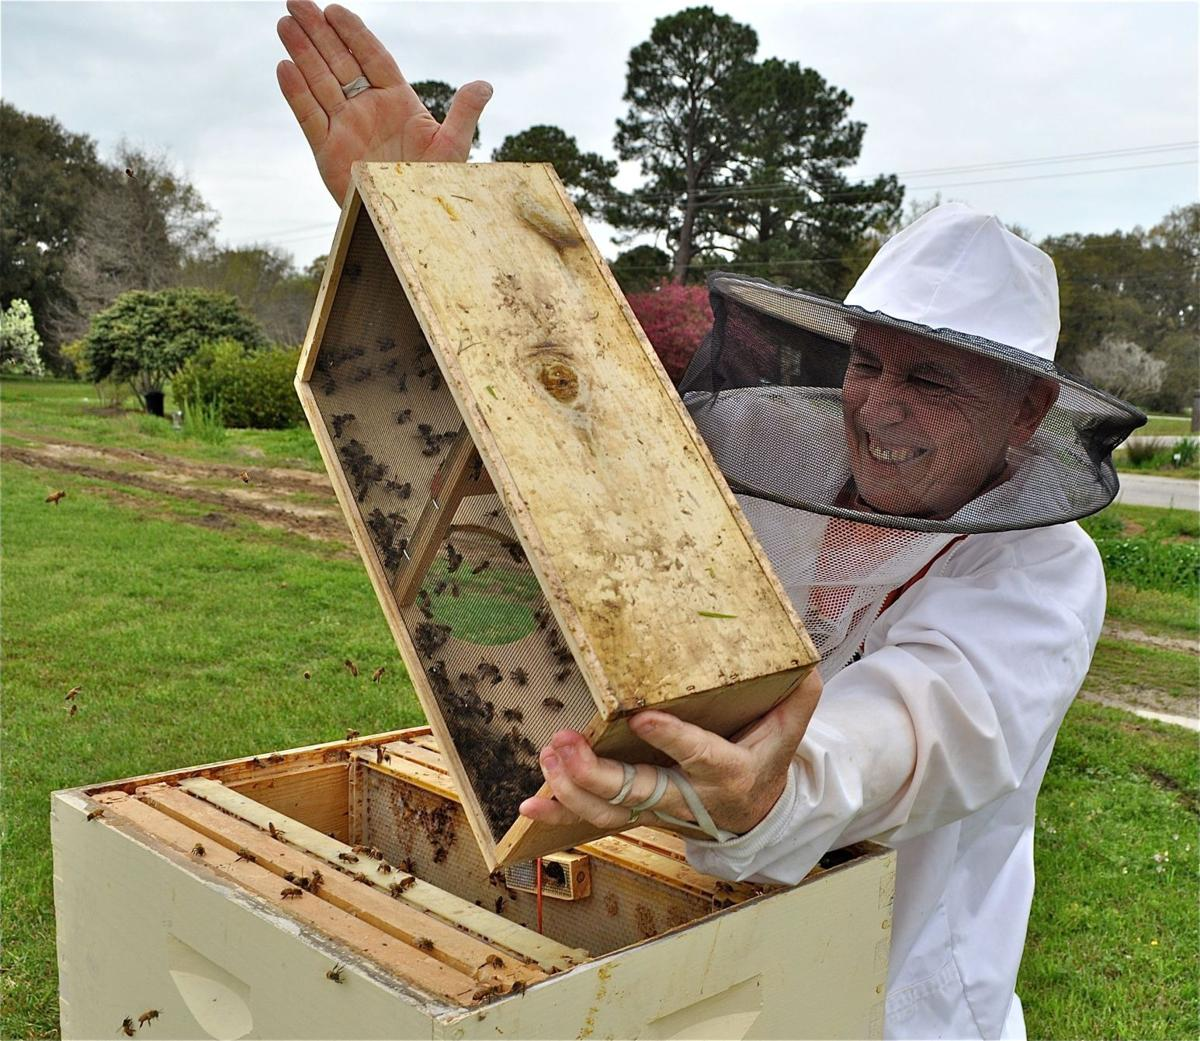 Abuzz about bees